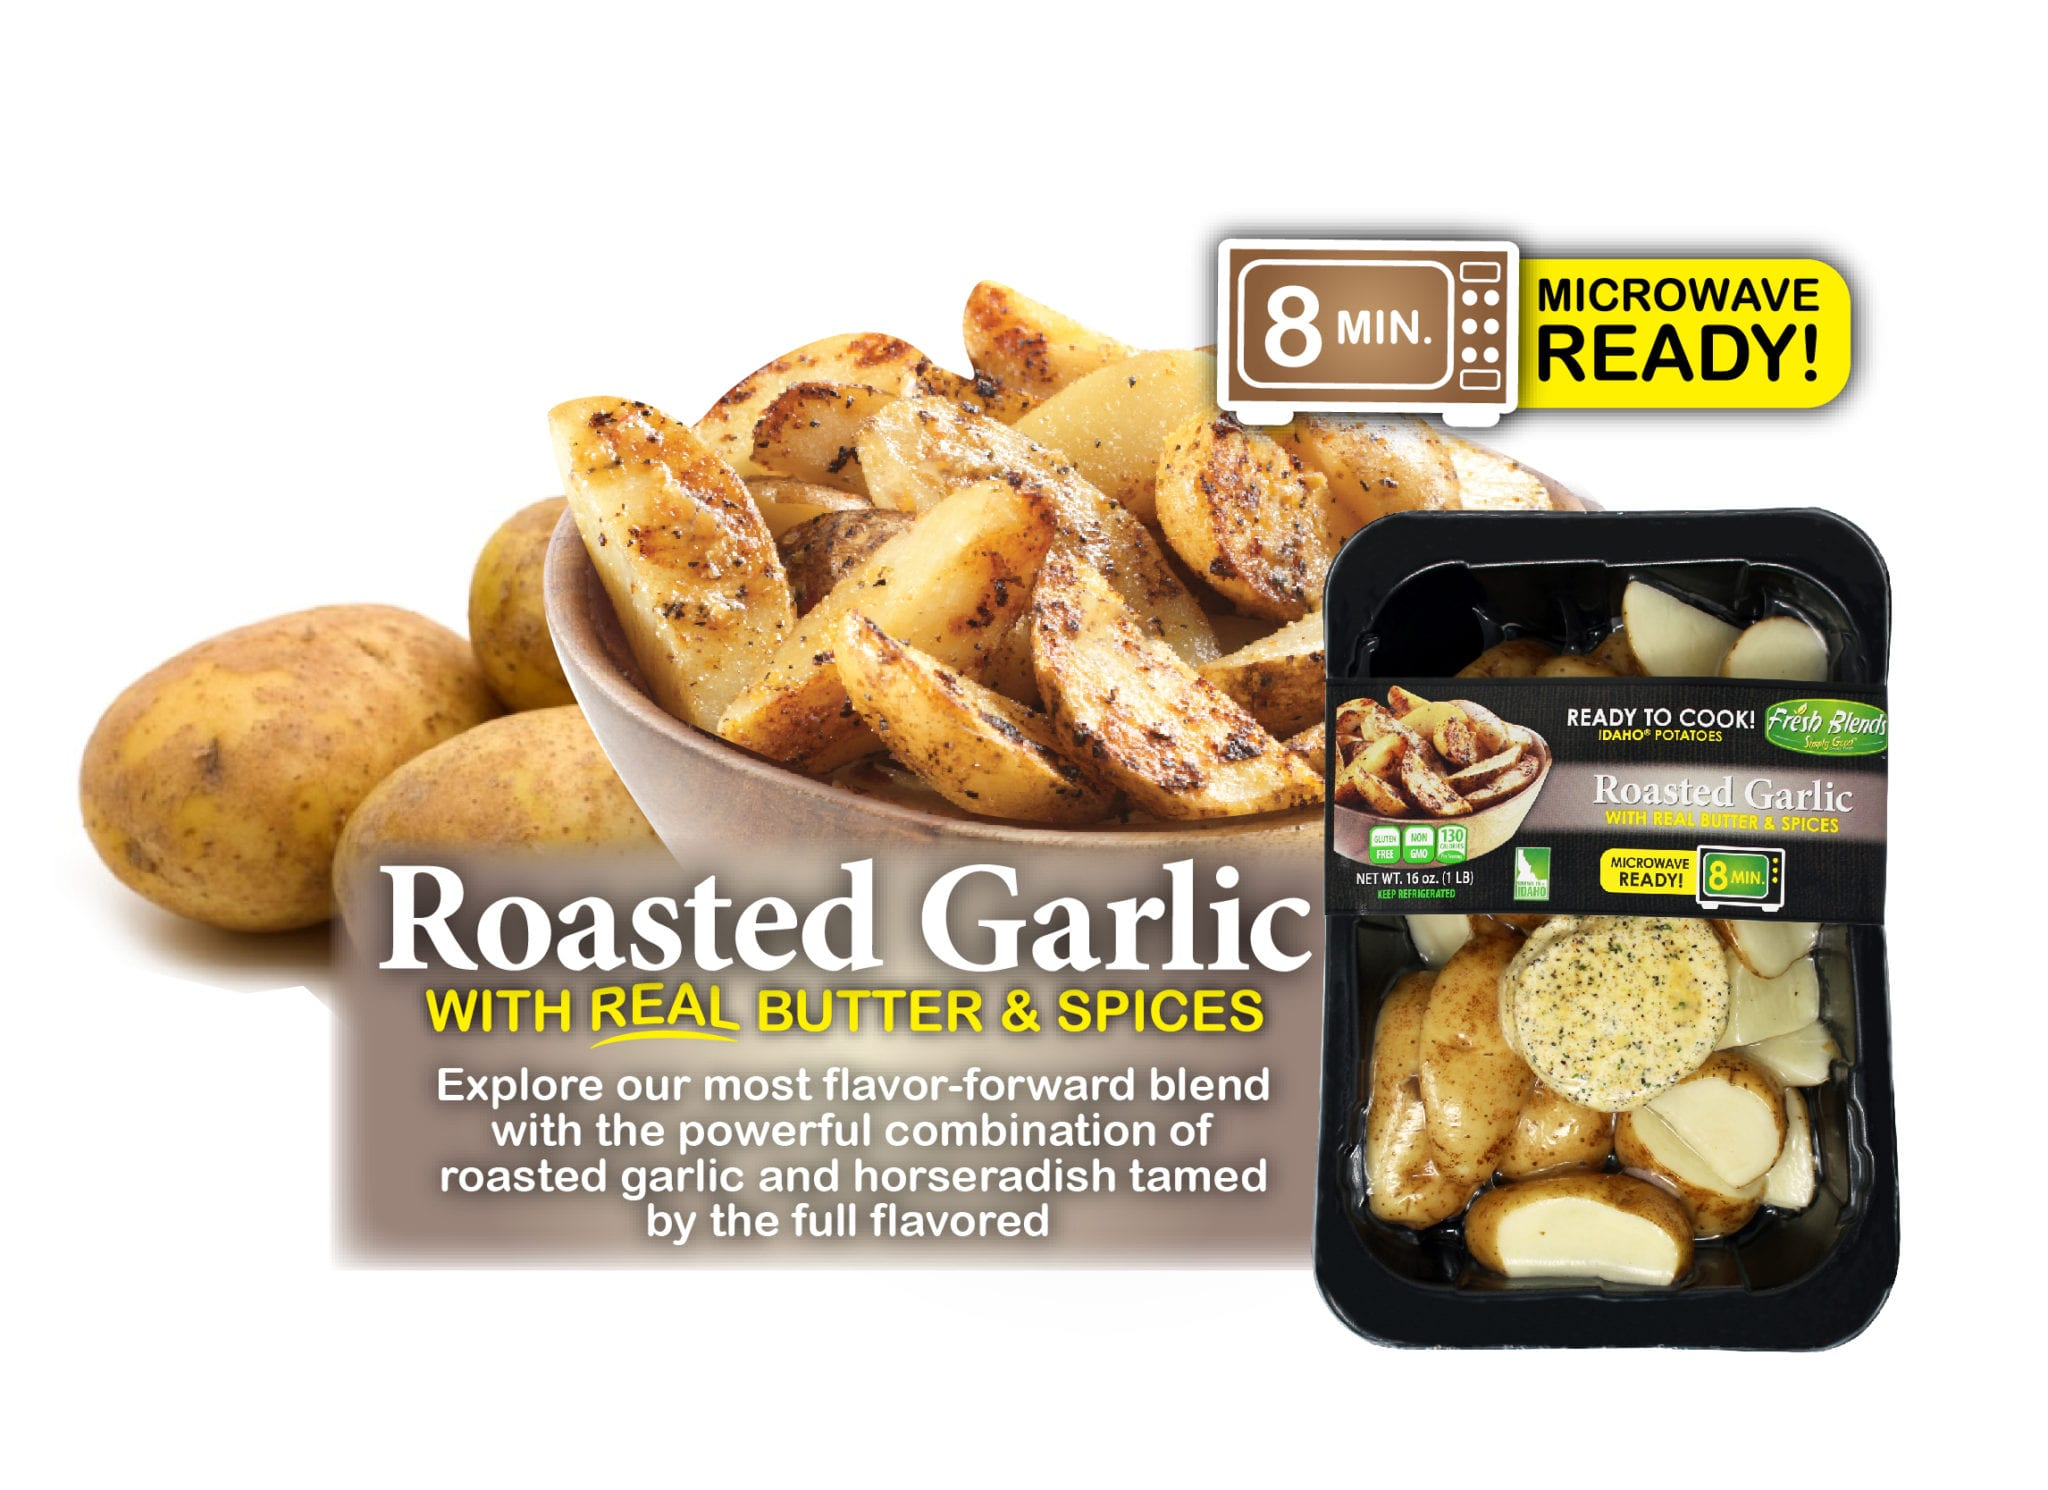 Eagle Eye Produce Fresh Blends Roasted Garlic